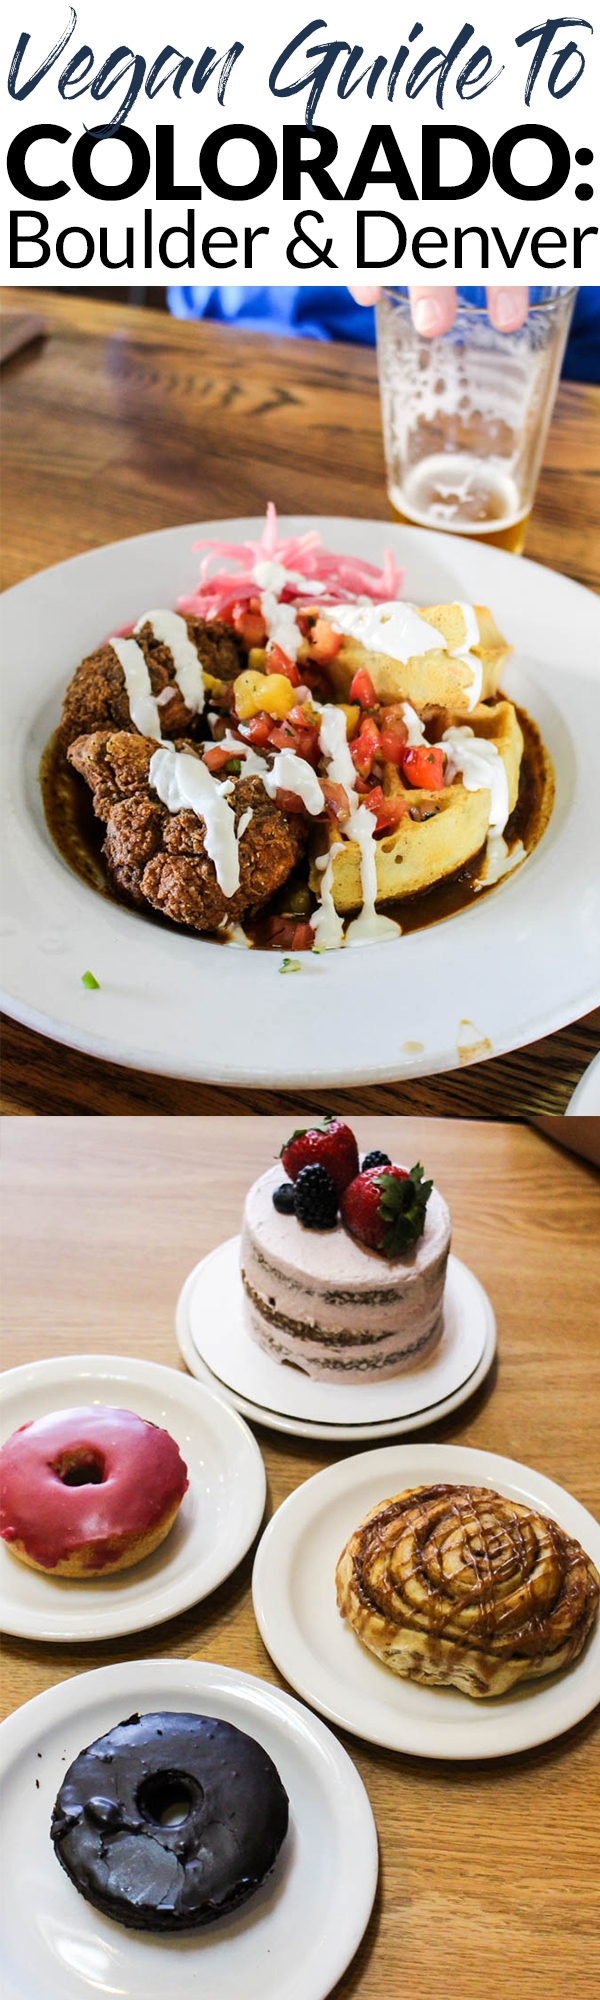 If you're traveling to Colorado soon, use this guide about eating vegan in Colorado to make finding restaurants easier! This covers the best vegan-friendly restaurants in the Boulder and Denver areas.